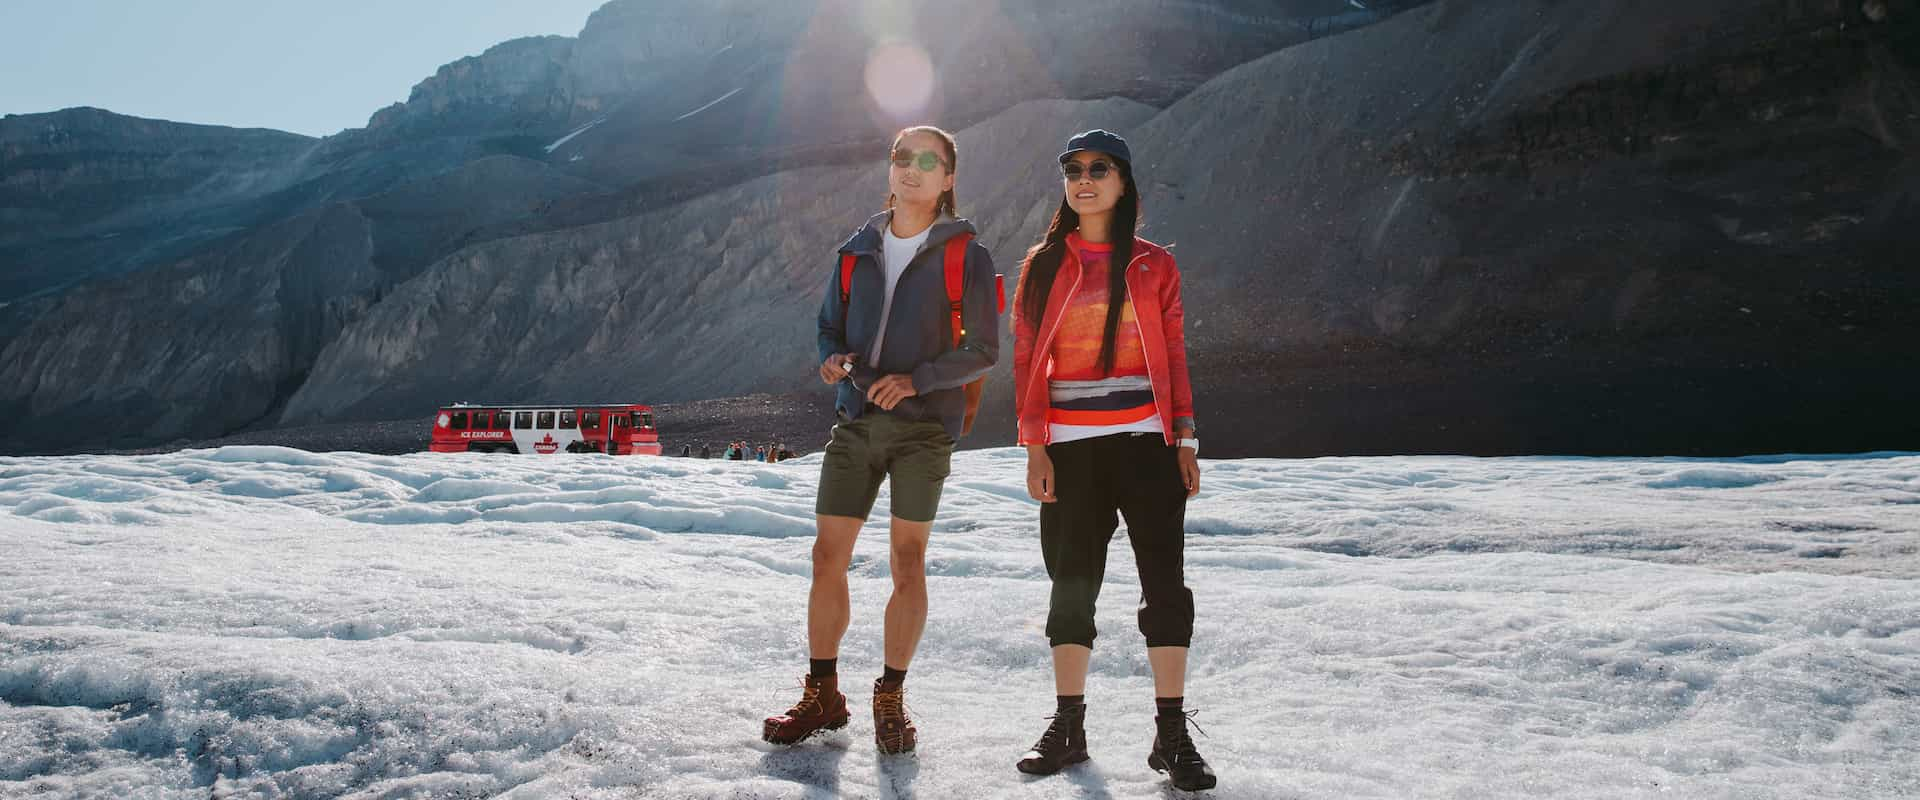 Stand on the ancient Athabasca Glacier on the Columbia Icefields Parkway Tour with Discover Banff Tours in the Canadian Rockies